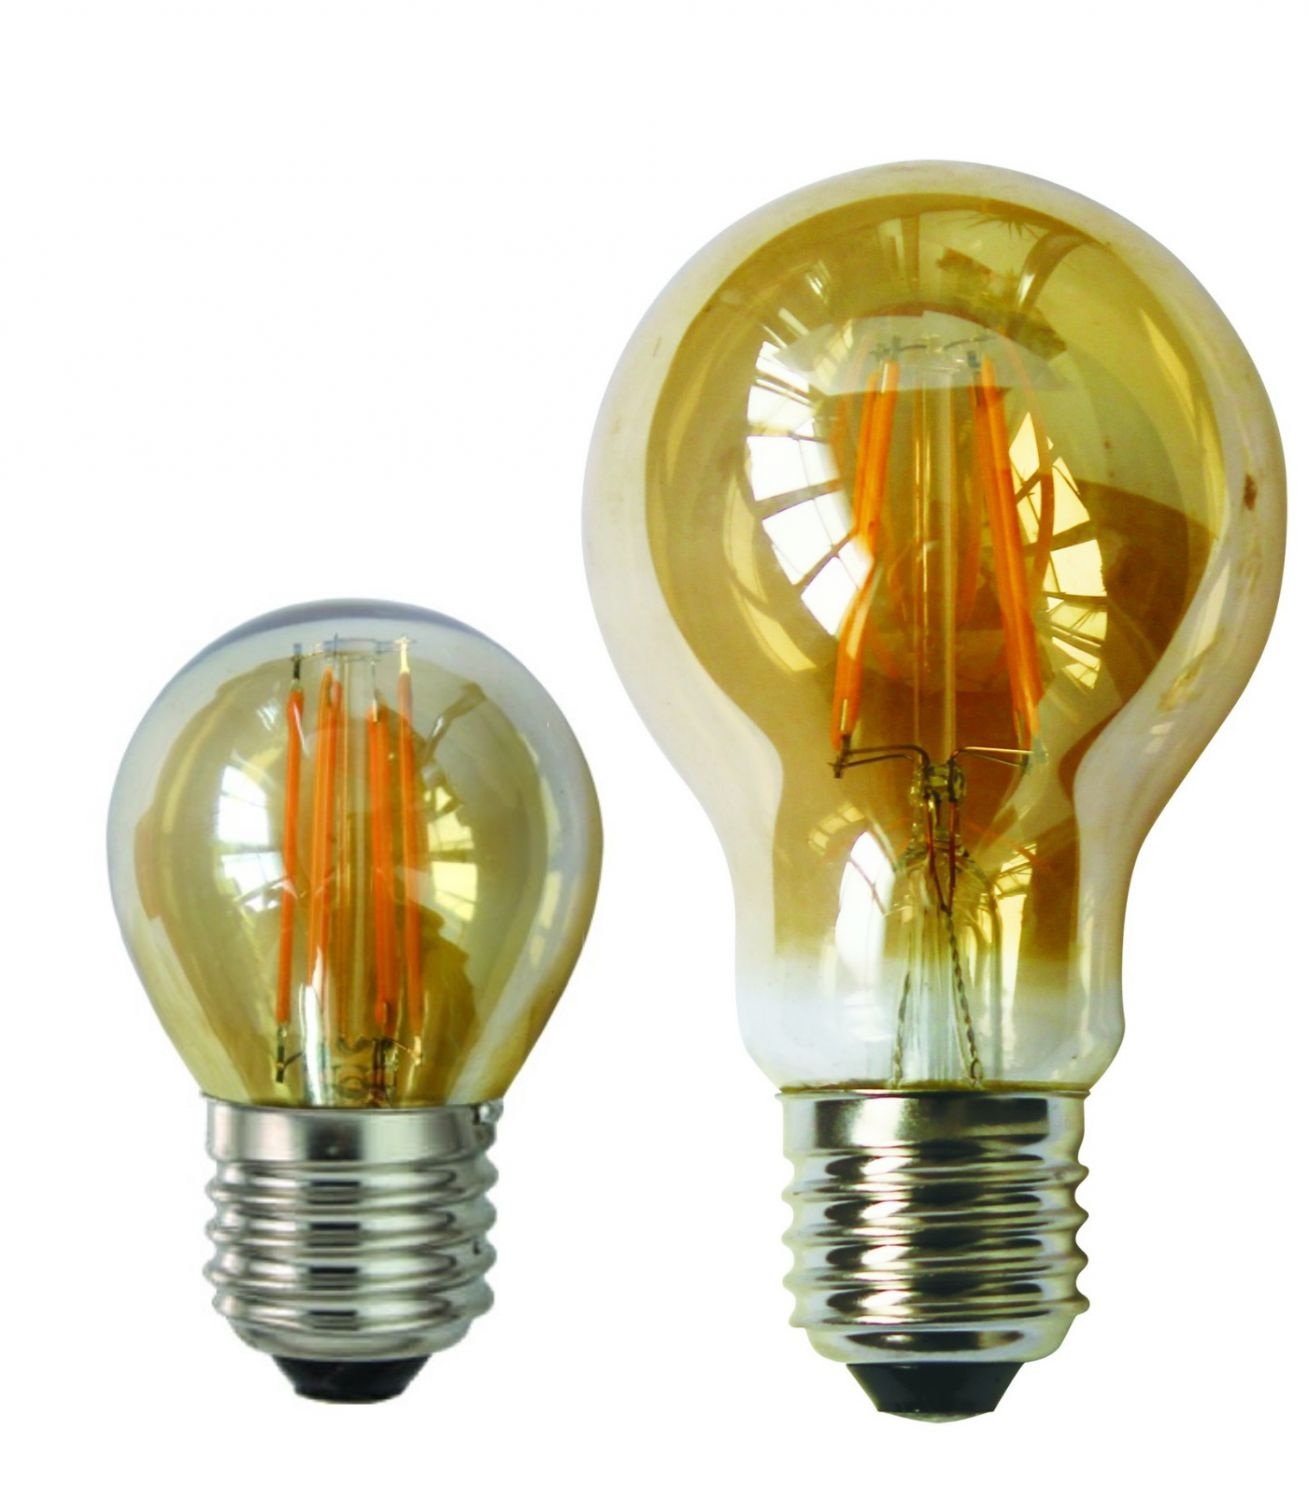 e27 led 4w 6w warmwei gl hbirne filament retro edison vintage leuchtmittel bulb ebay. Black Bedroom Furniture Sets. Home Design Ideas